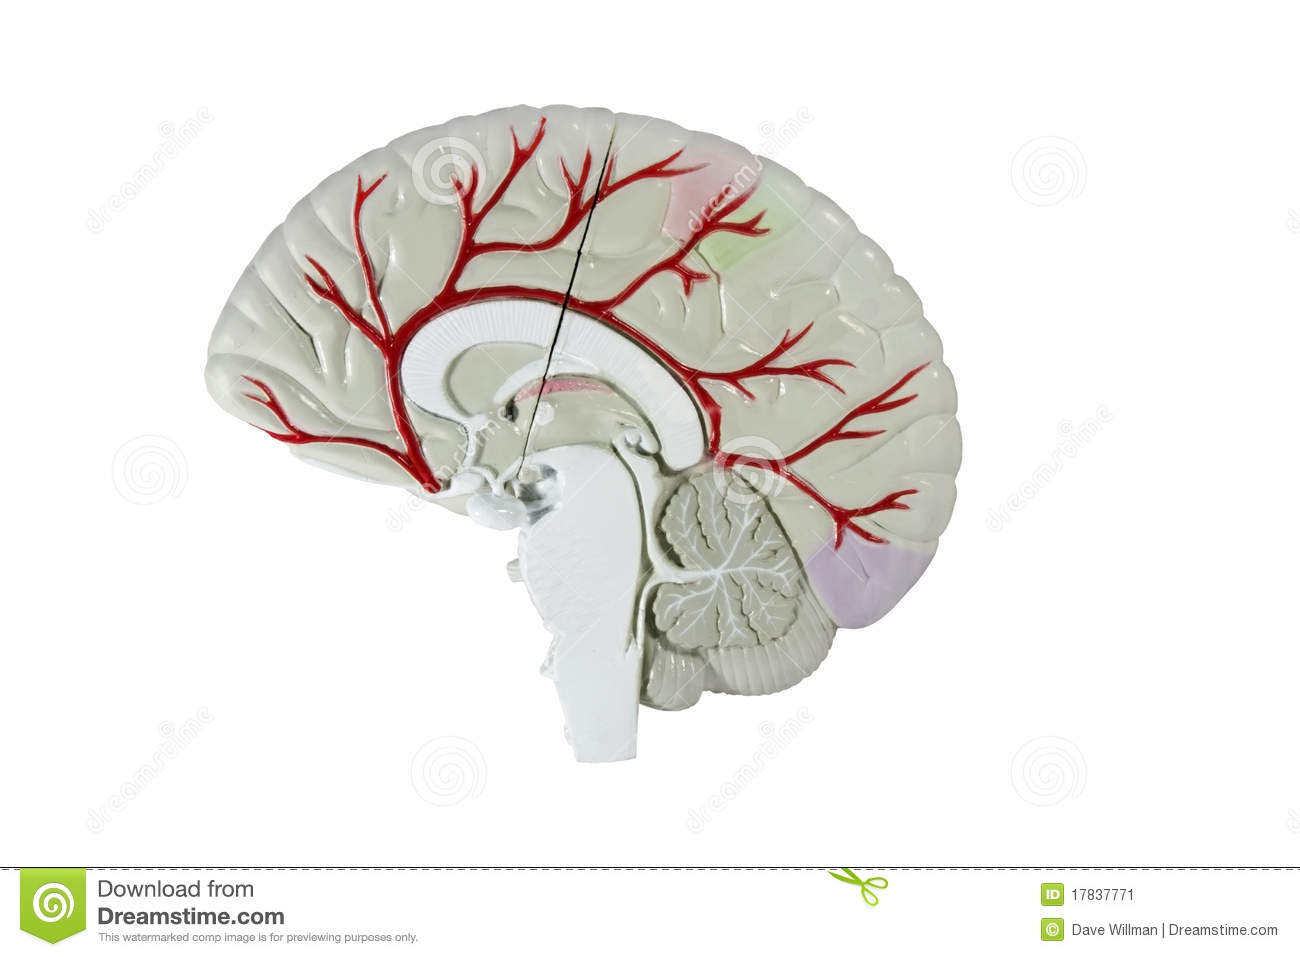 Human brain cross section model stock image image of section human brain cross section model ccuart Images